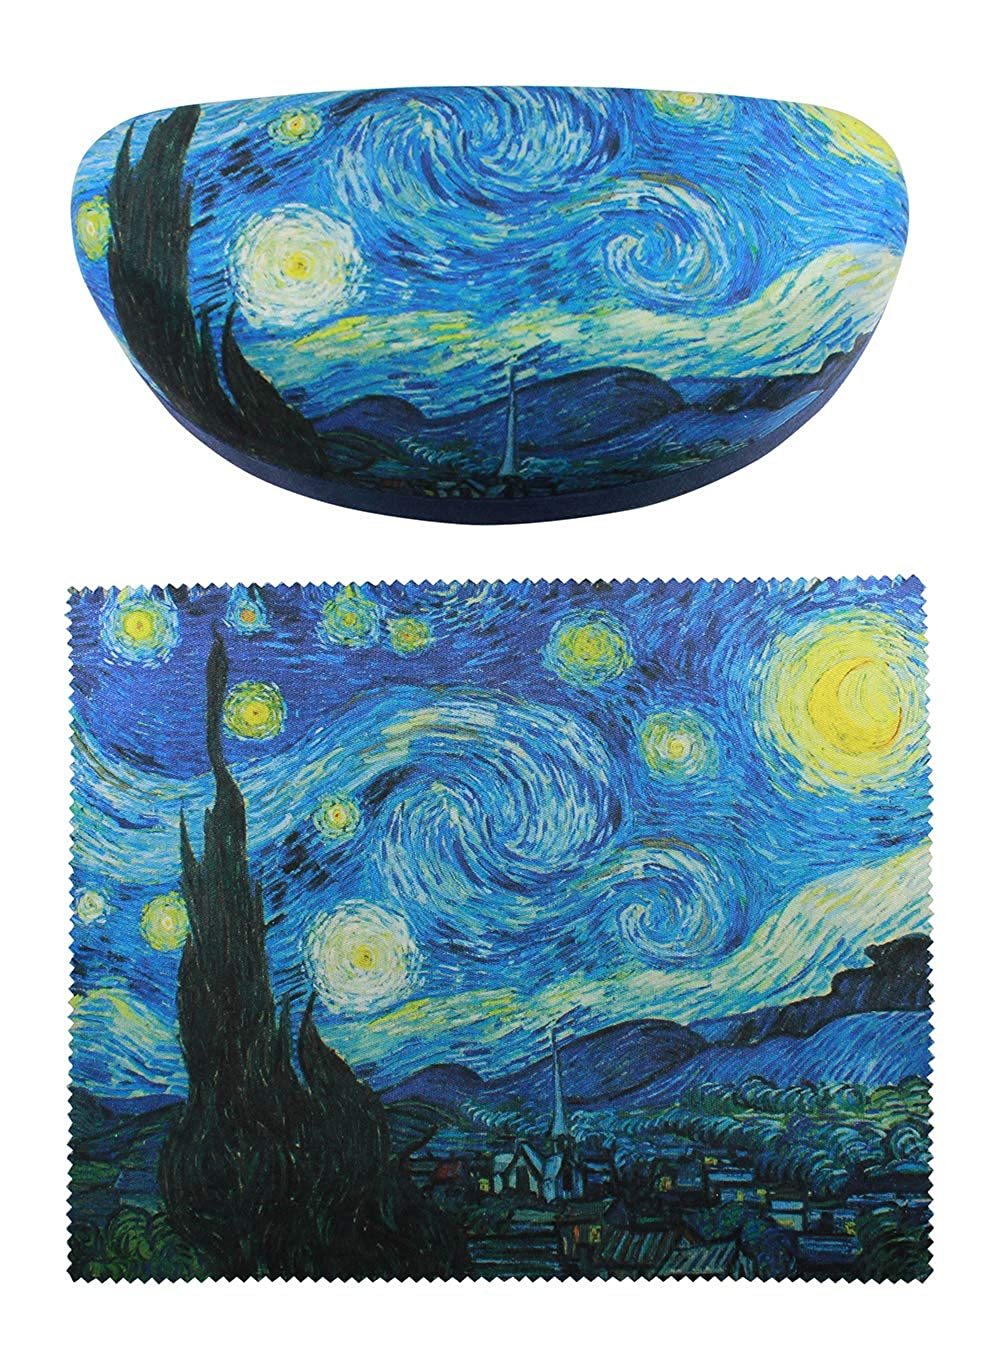 Amazon.com: Vincent Van Gogh Estarry Night Painting Art ...